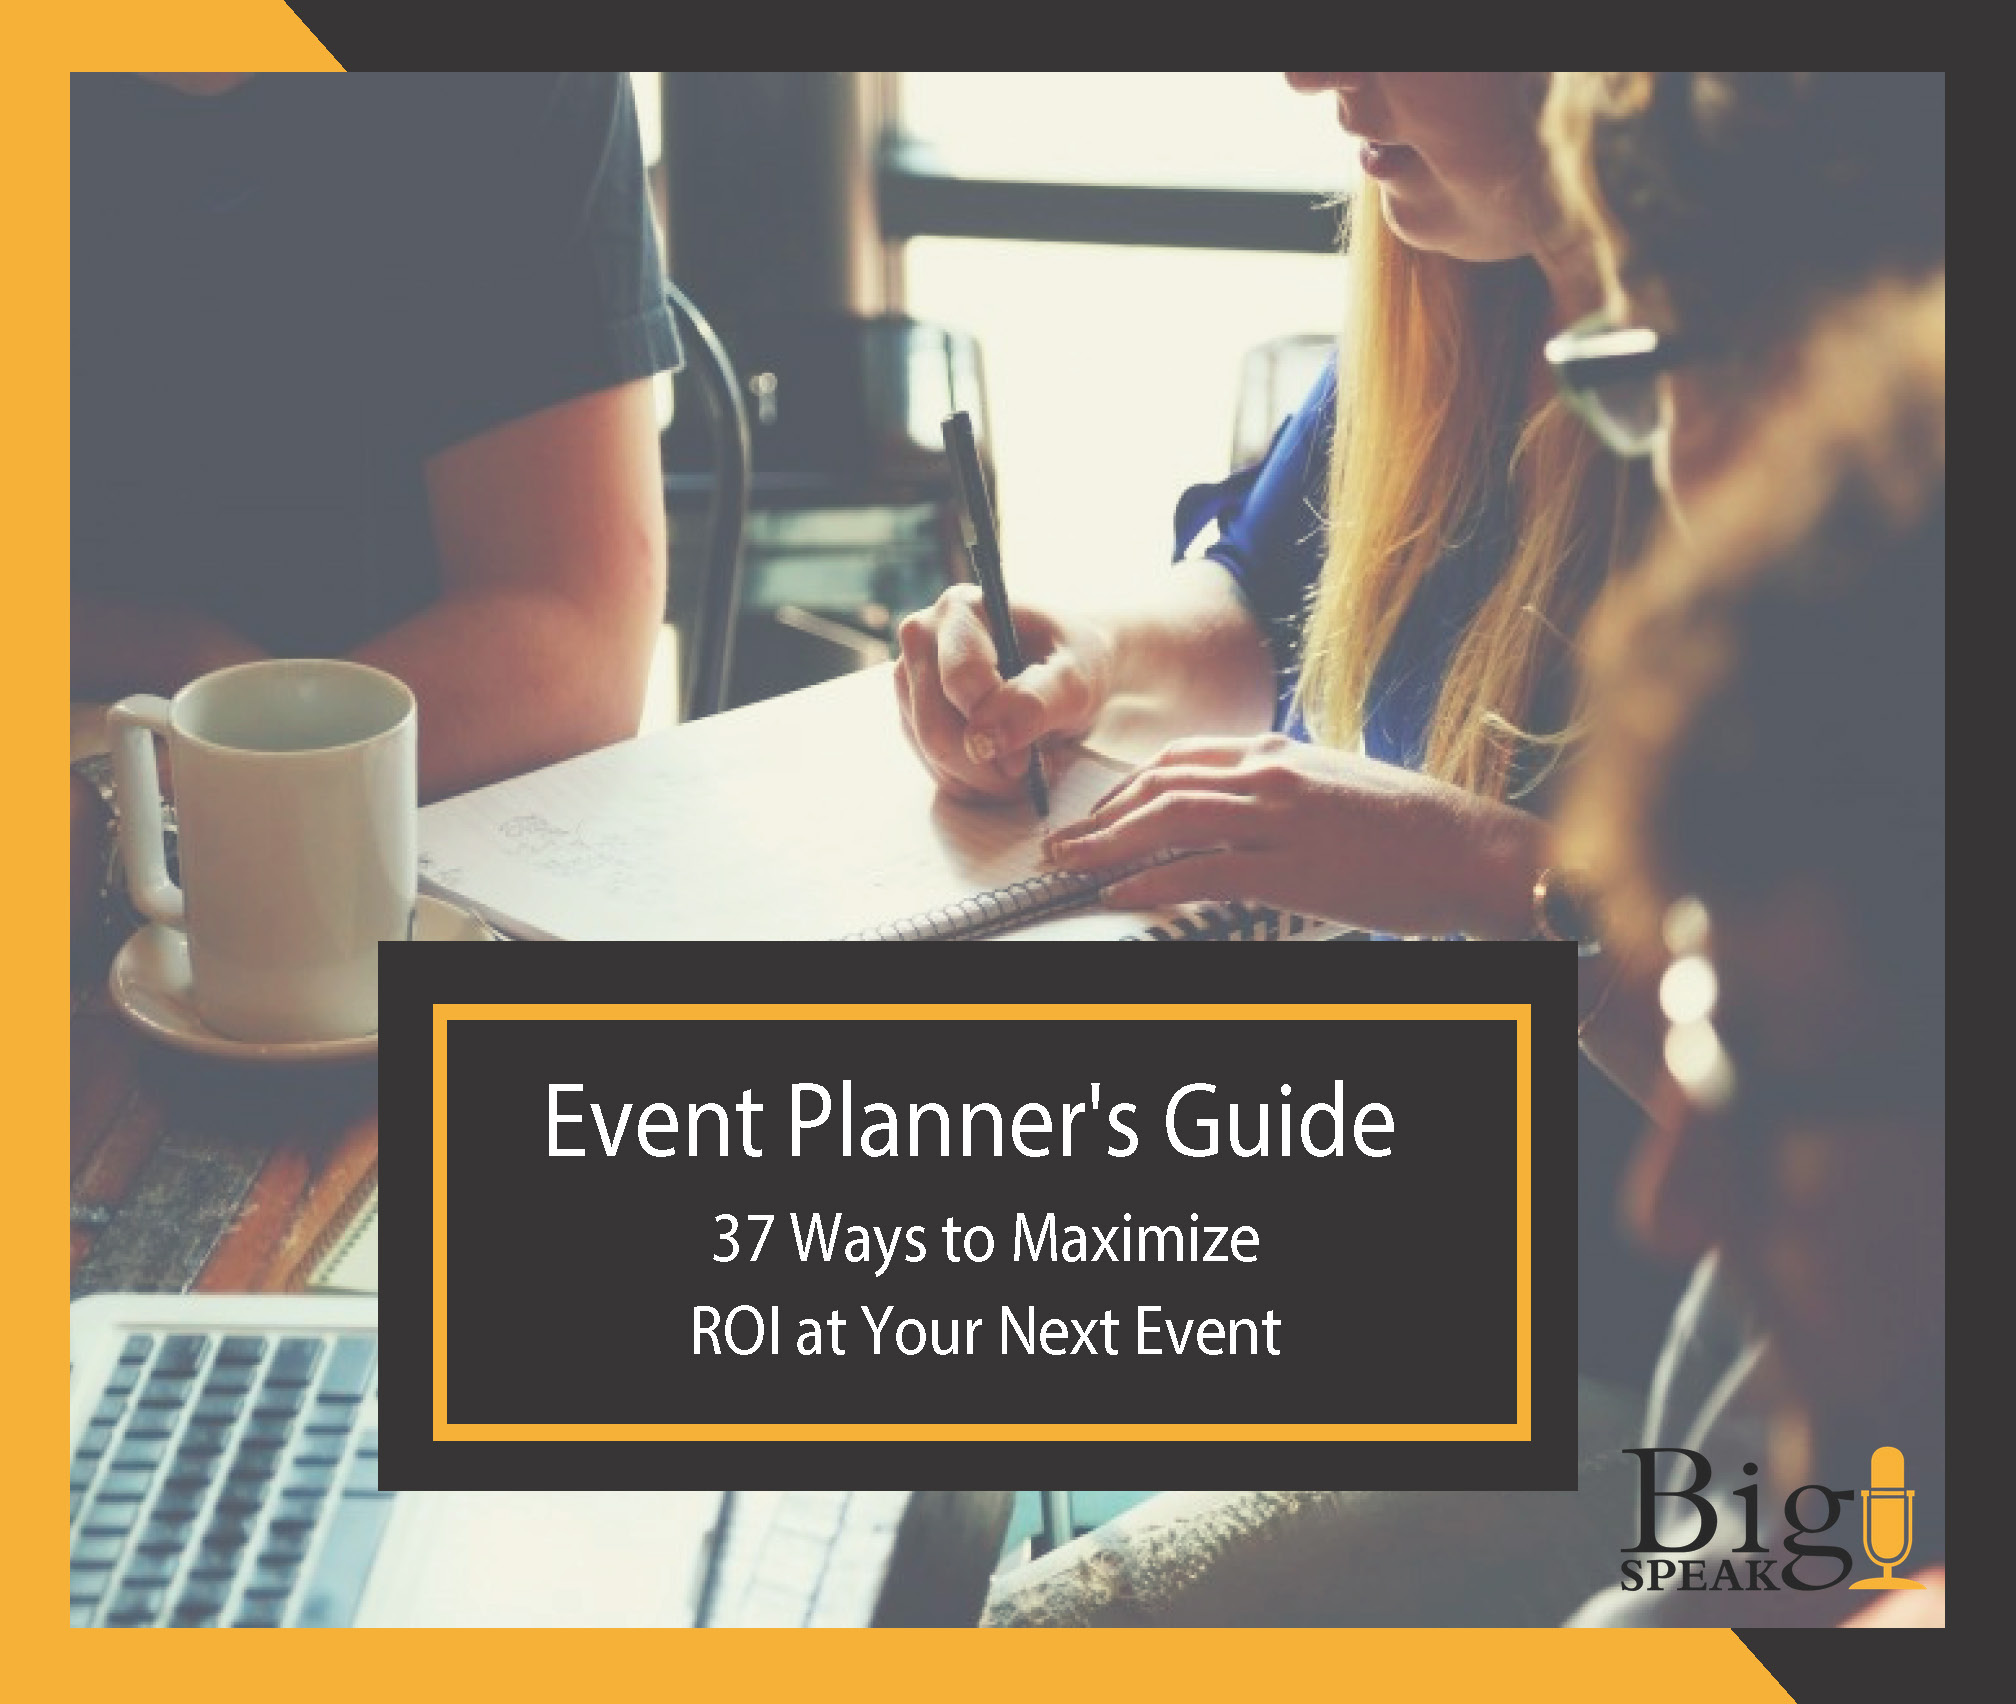 37 Ways to Maximize ROI at Your Next Event